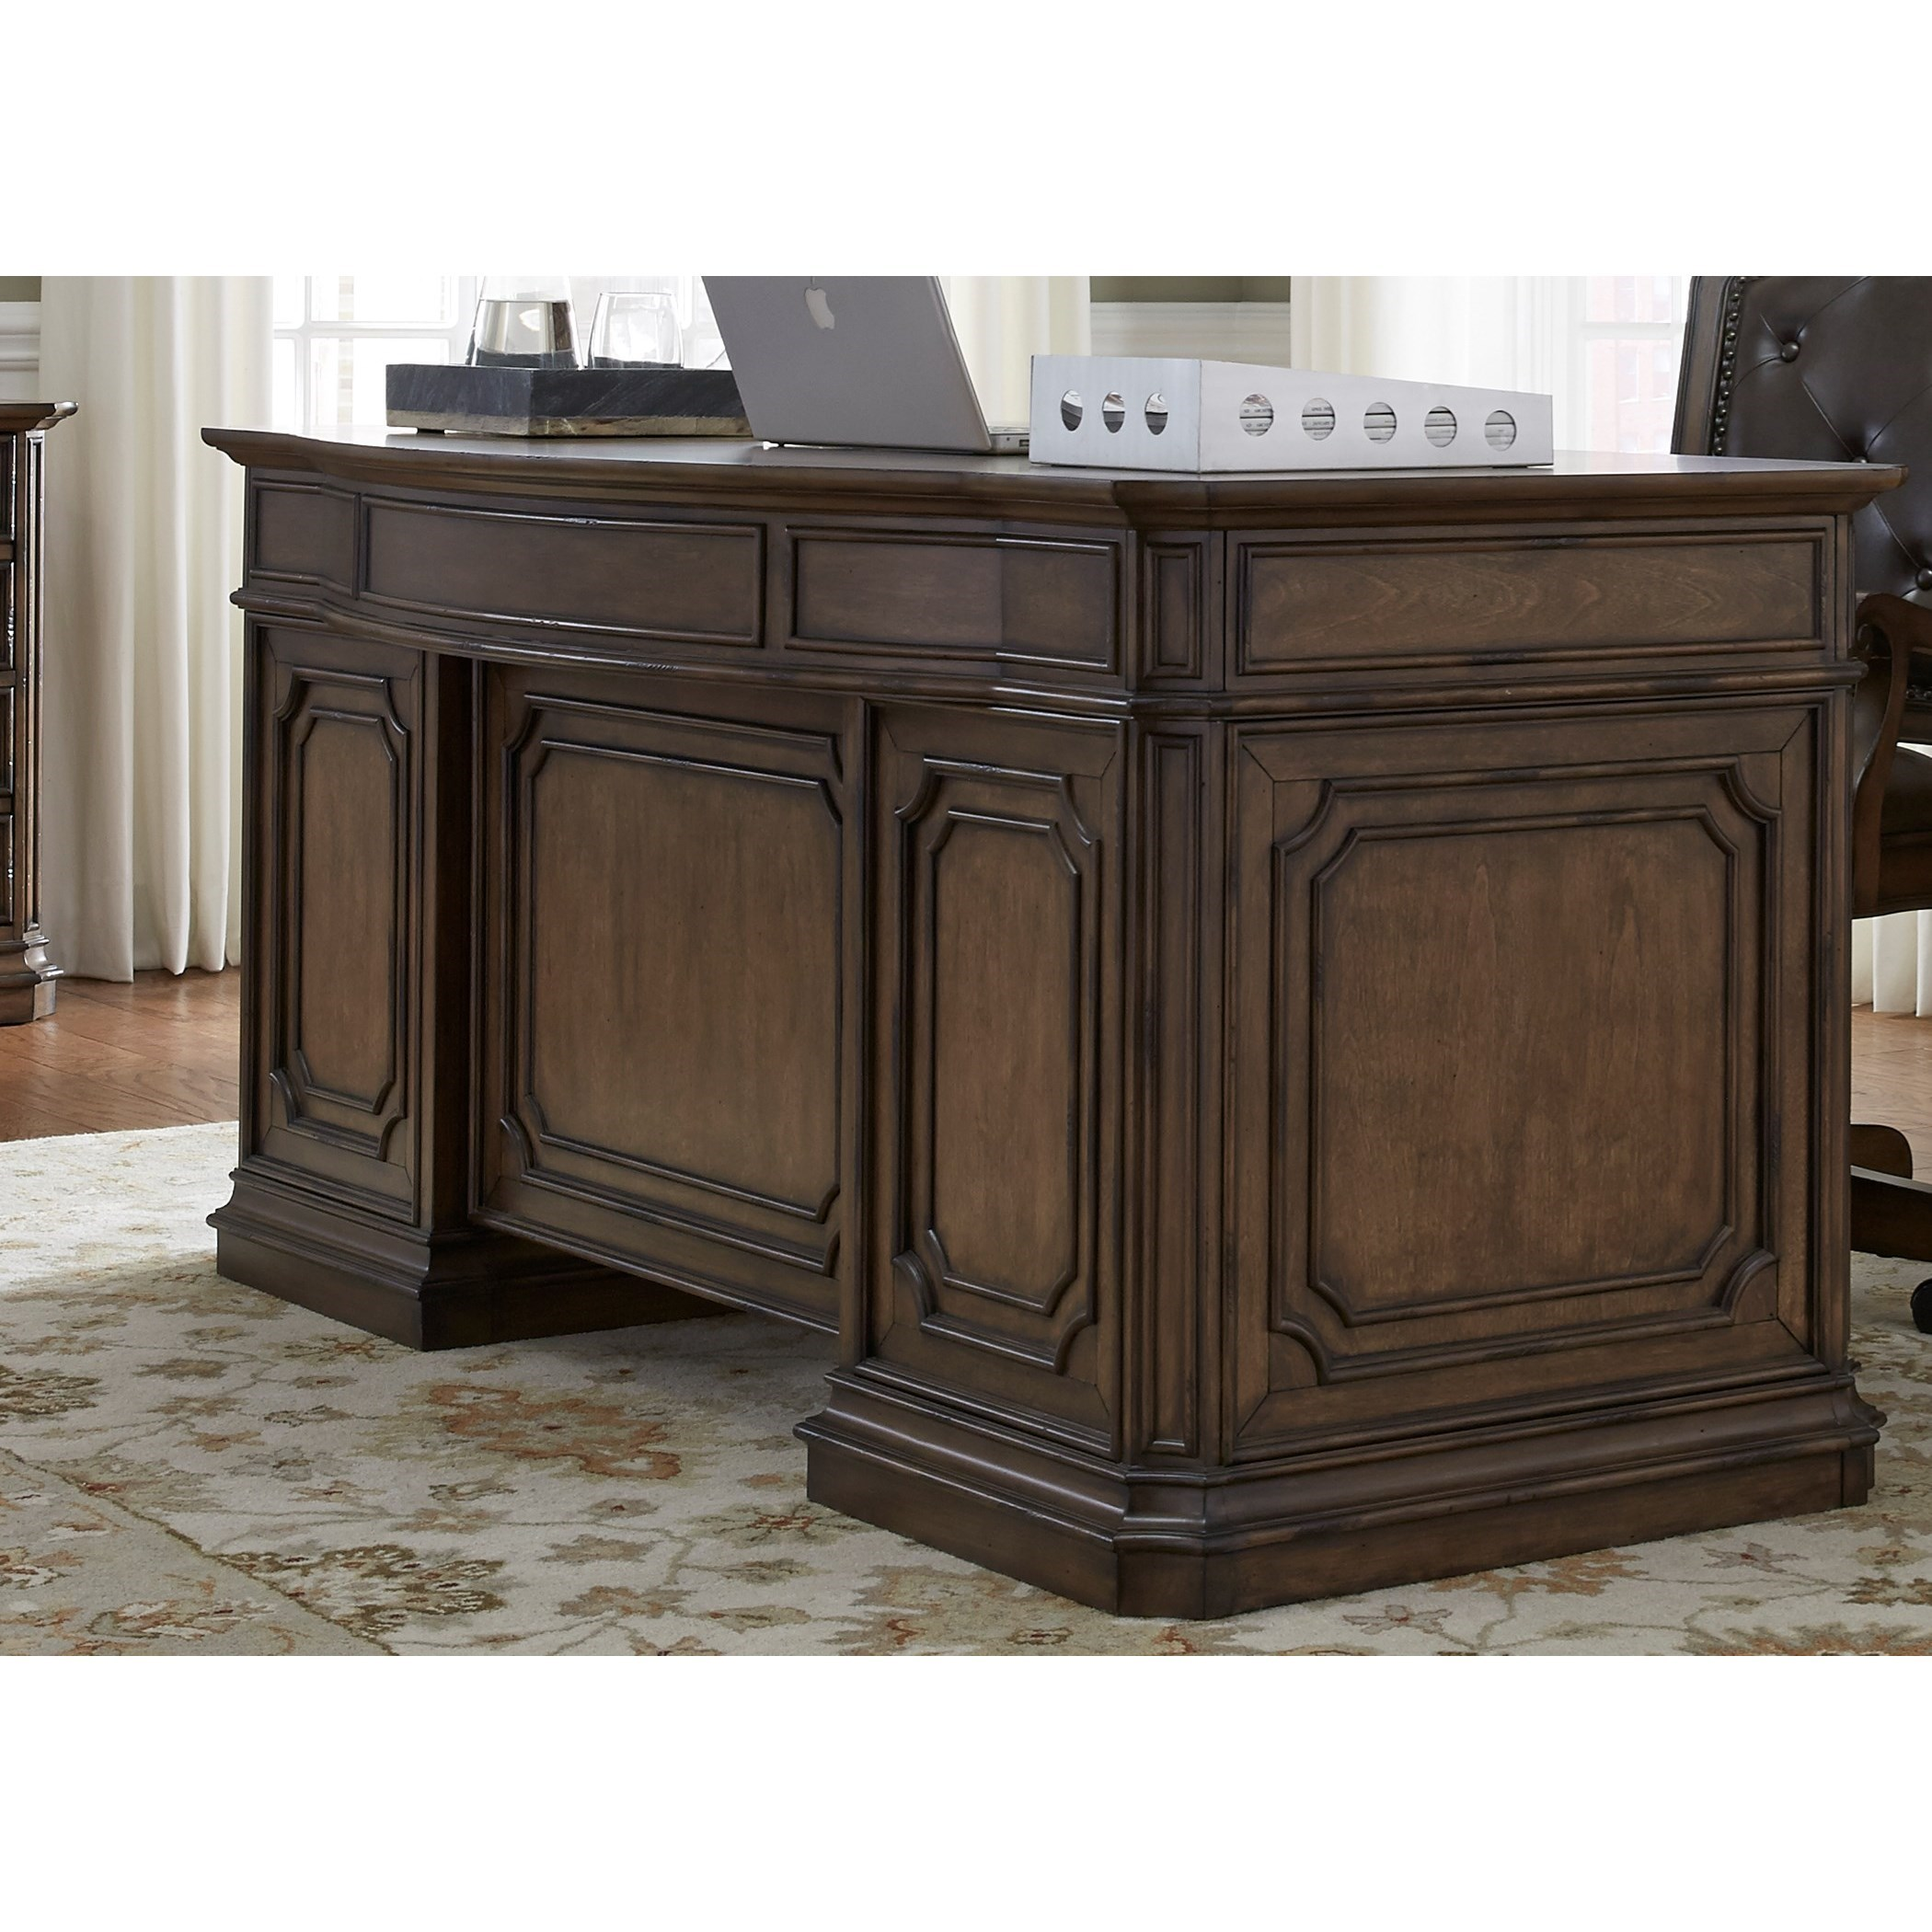 Traditional Executive Desk with Fully Stained Interior Drawers